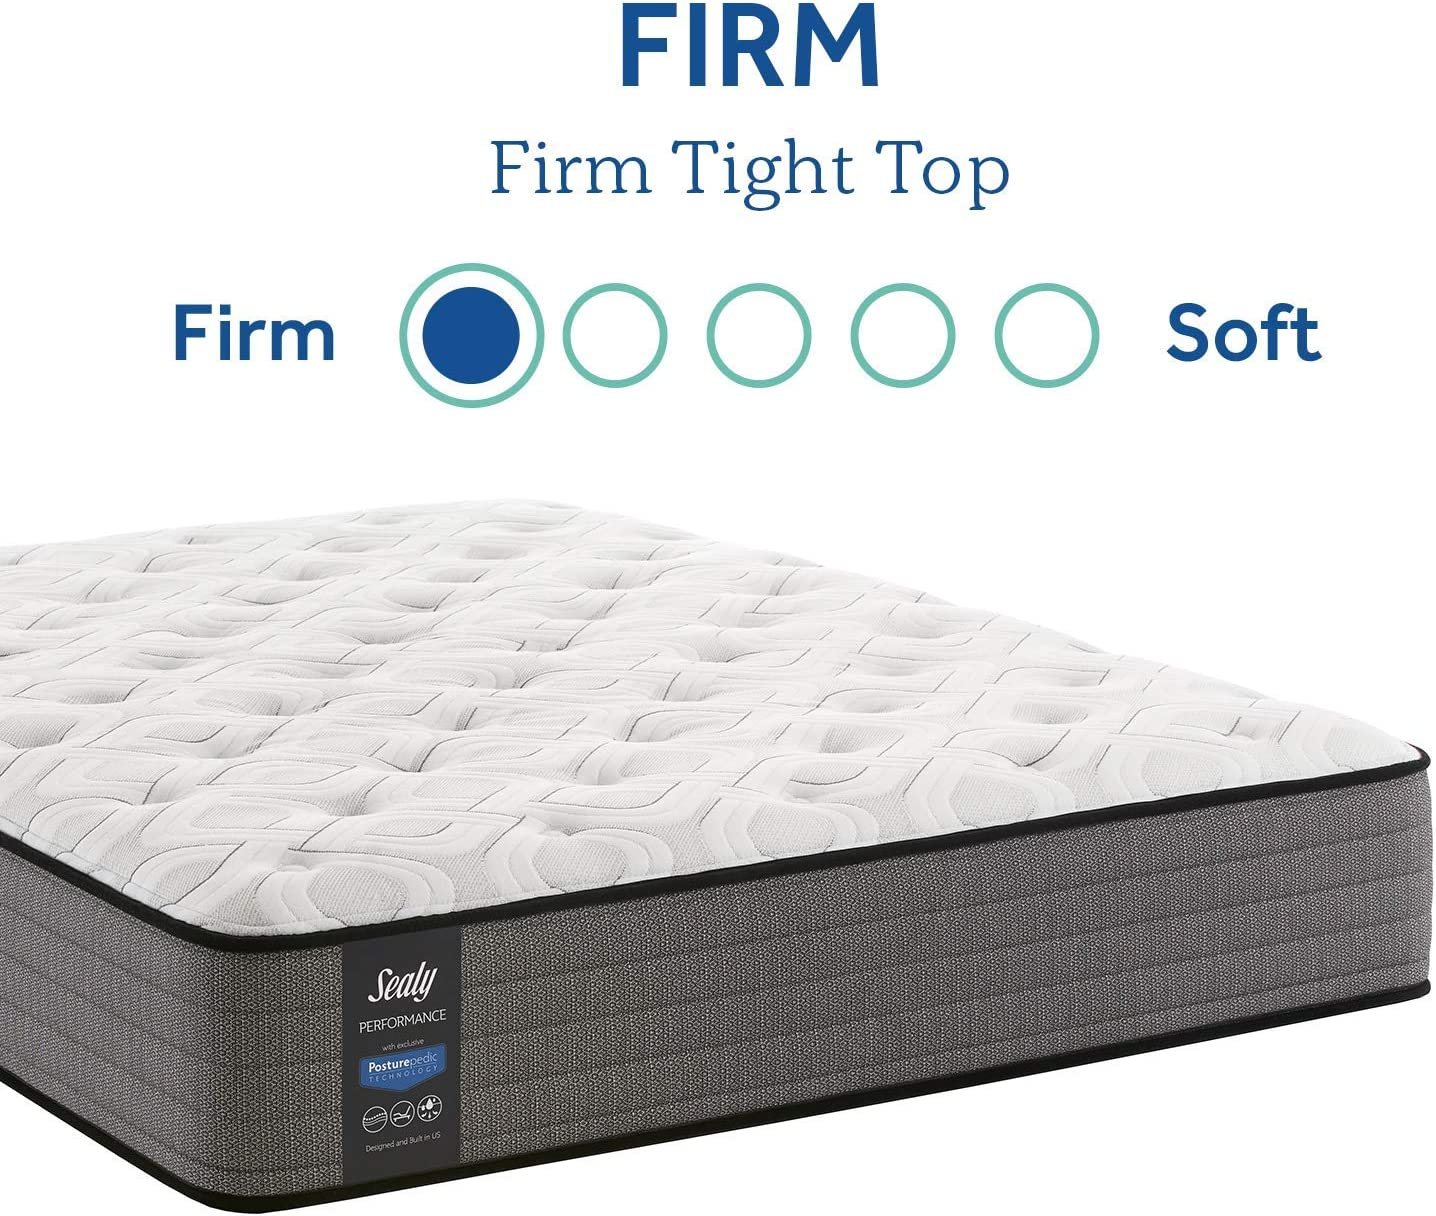 Sealy mattress reviews consumer report